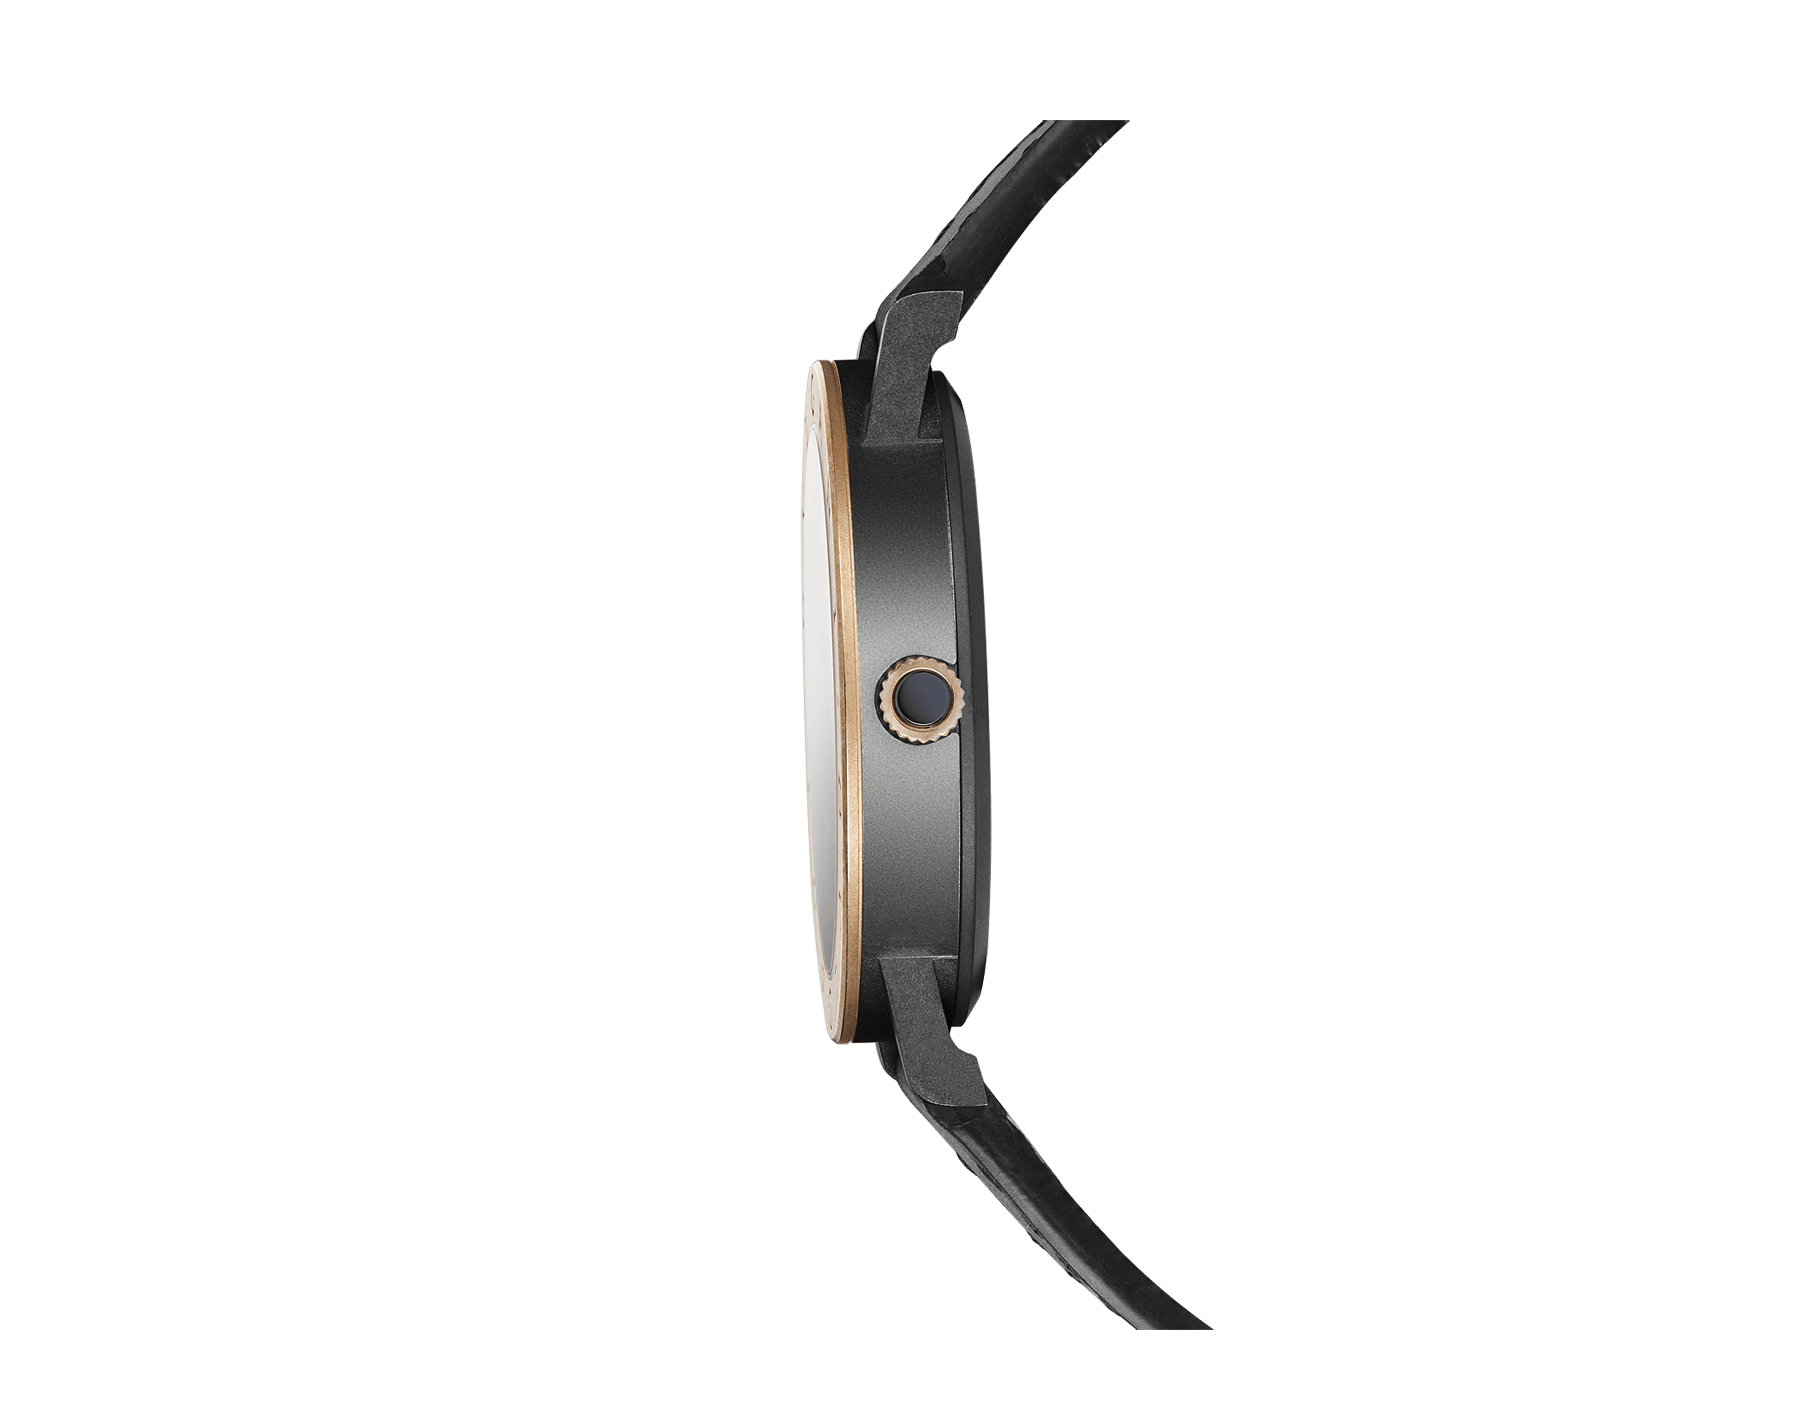 BVLGARI BVLGARI Solotempo watch with mechanical manufacture movement, automatic winding and date, stainless steel case treated with black Diamond Like Carbon, bronze bezel engraved with double logo, black dial, black leather bracelet and interchangeable black rubber bracelet 102931 image 2